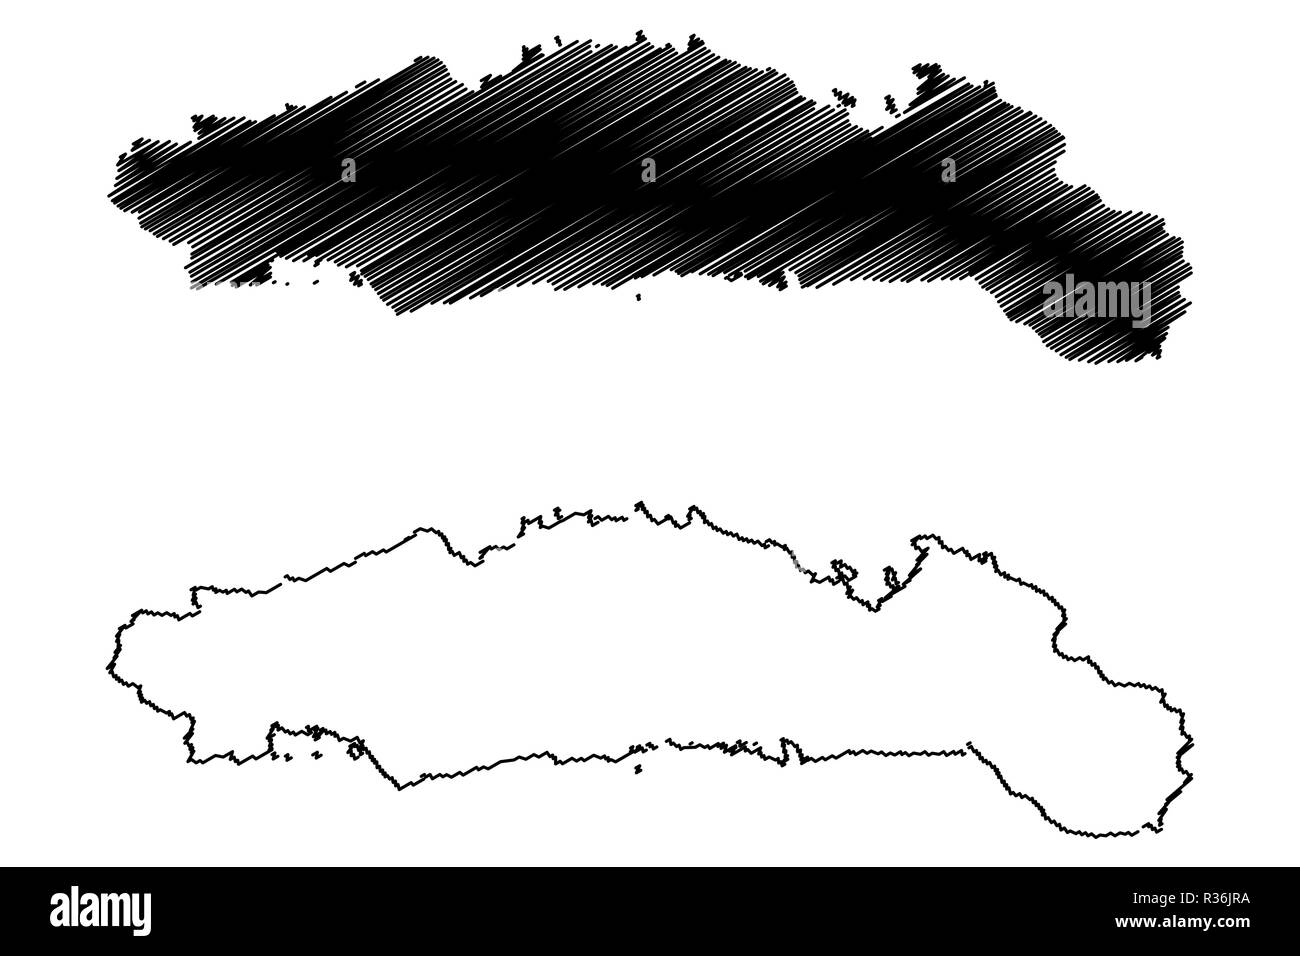 Gorontalo (Subdivisions of Indonesia, Provinces of Indonesia) map vector illustration, scribble sketch Hulontalo map - Stock Image